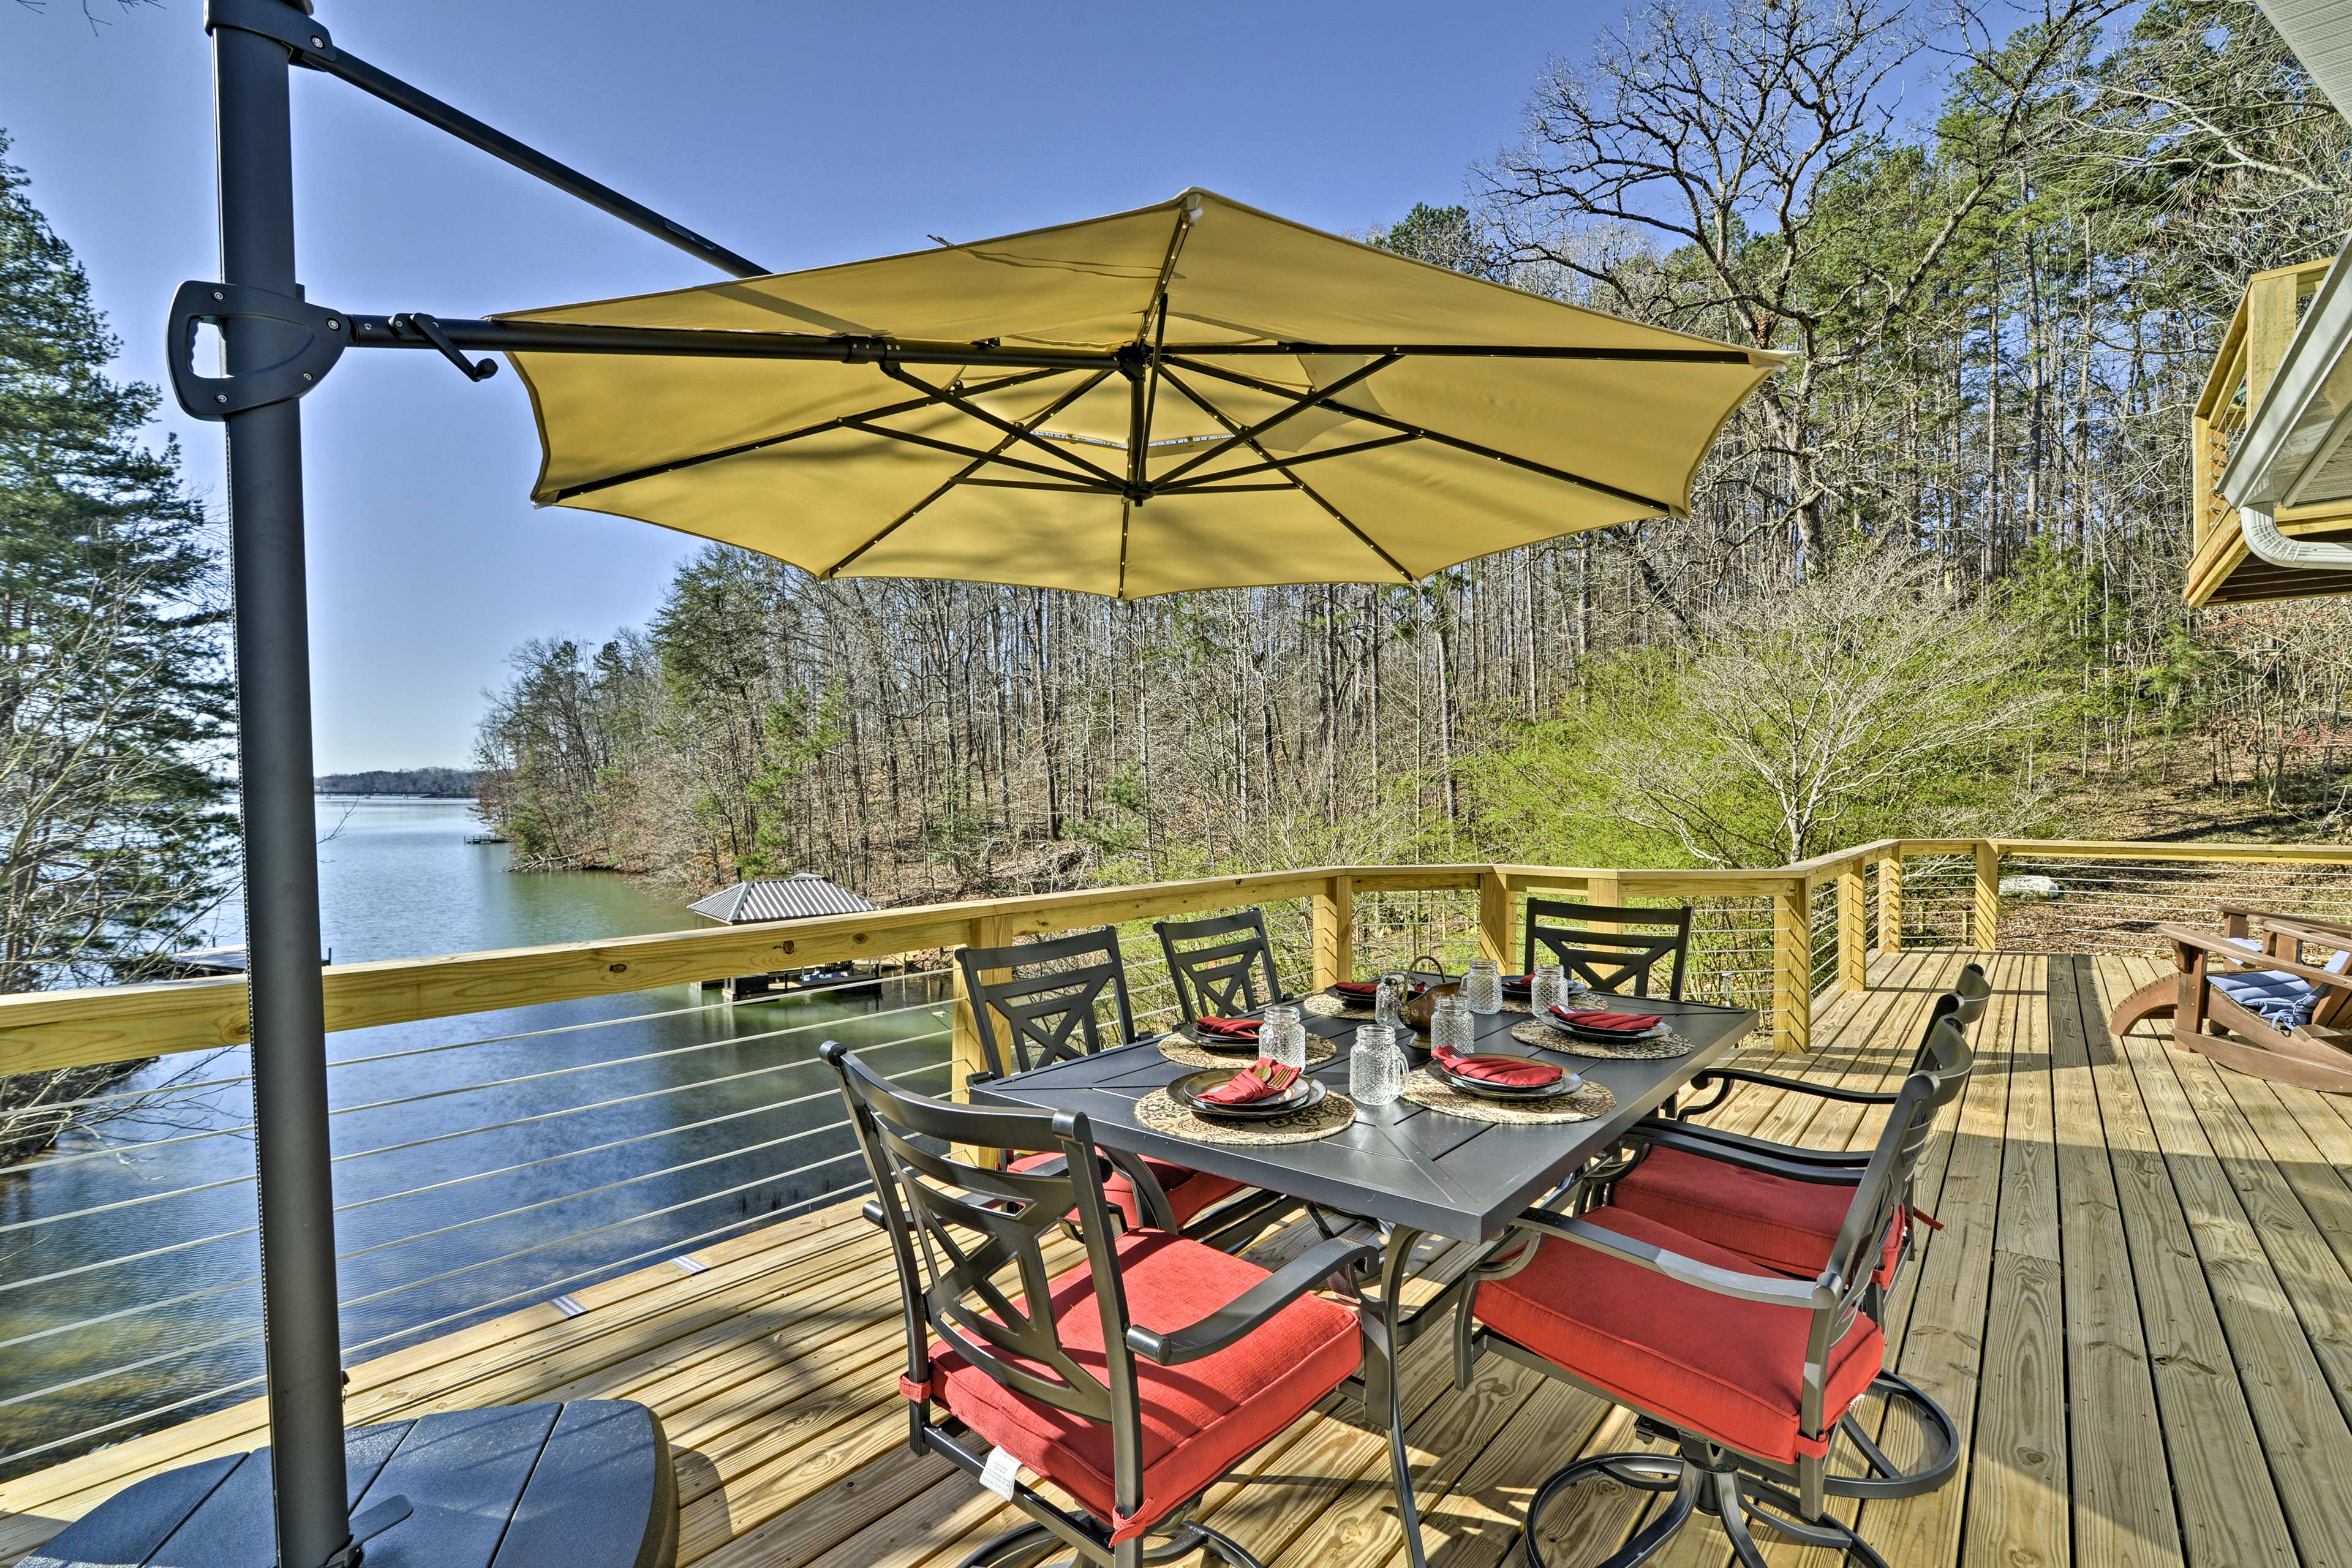 Relax on the deck during your stay at 'Savasana!'